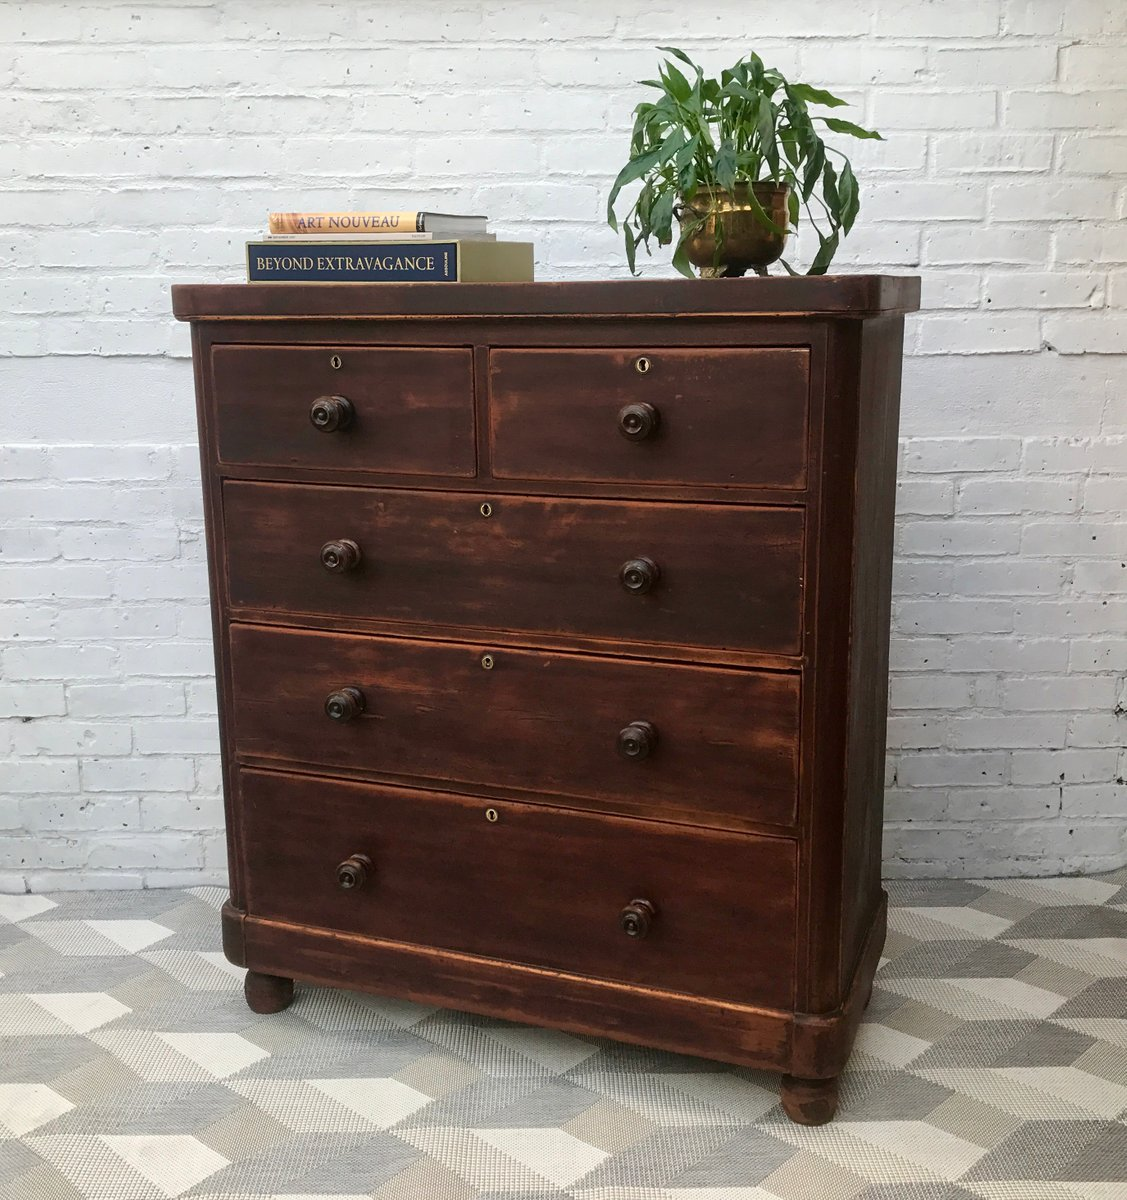 Large victorian chest of bedroom drawers for sale at pamono for Bedroom drawers sale